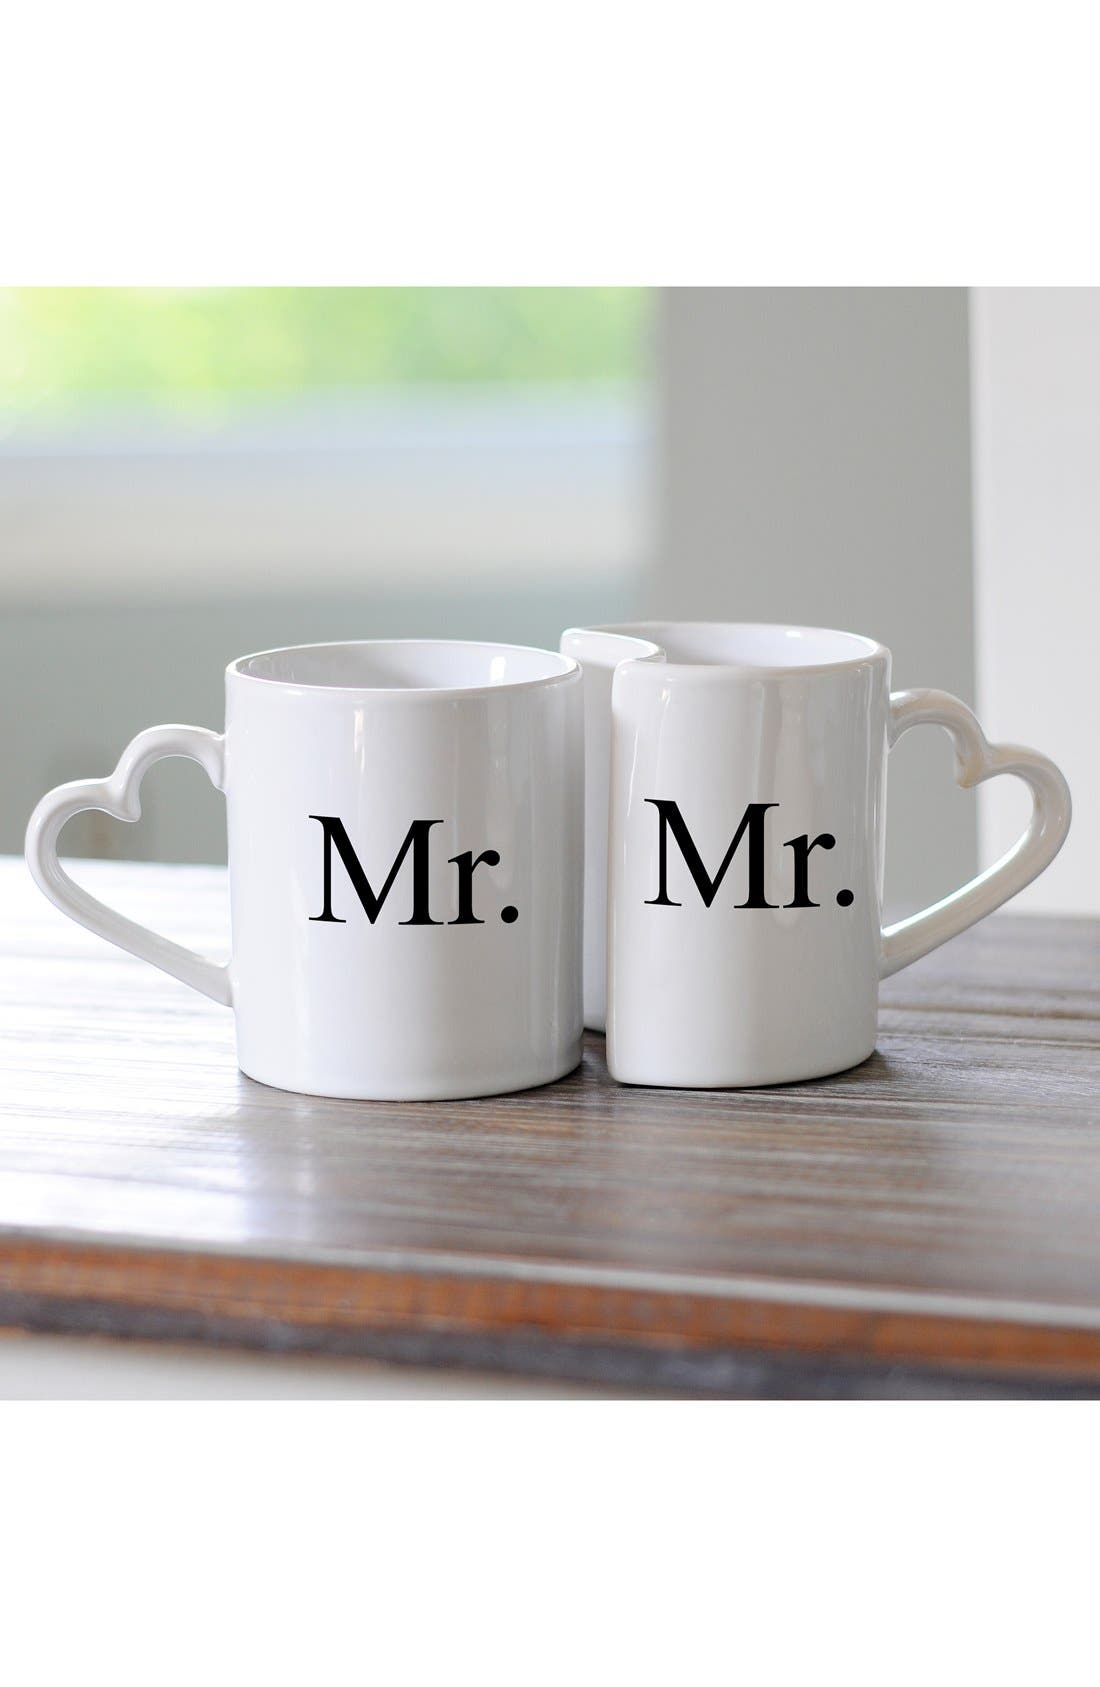 'For the Couple' Ceramic Coffee Mugs,                             Main thumbnail 1, color,                             101